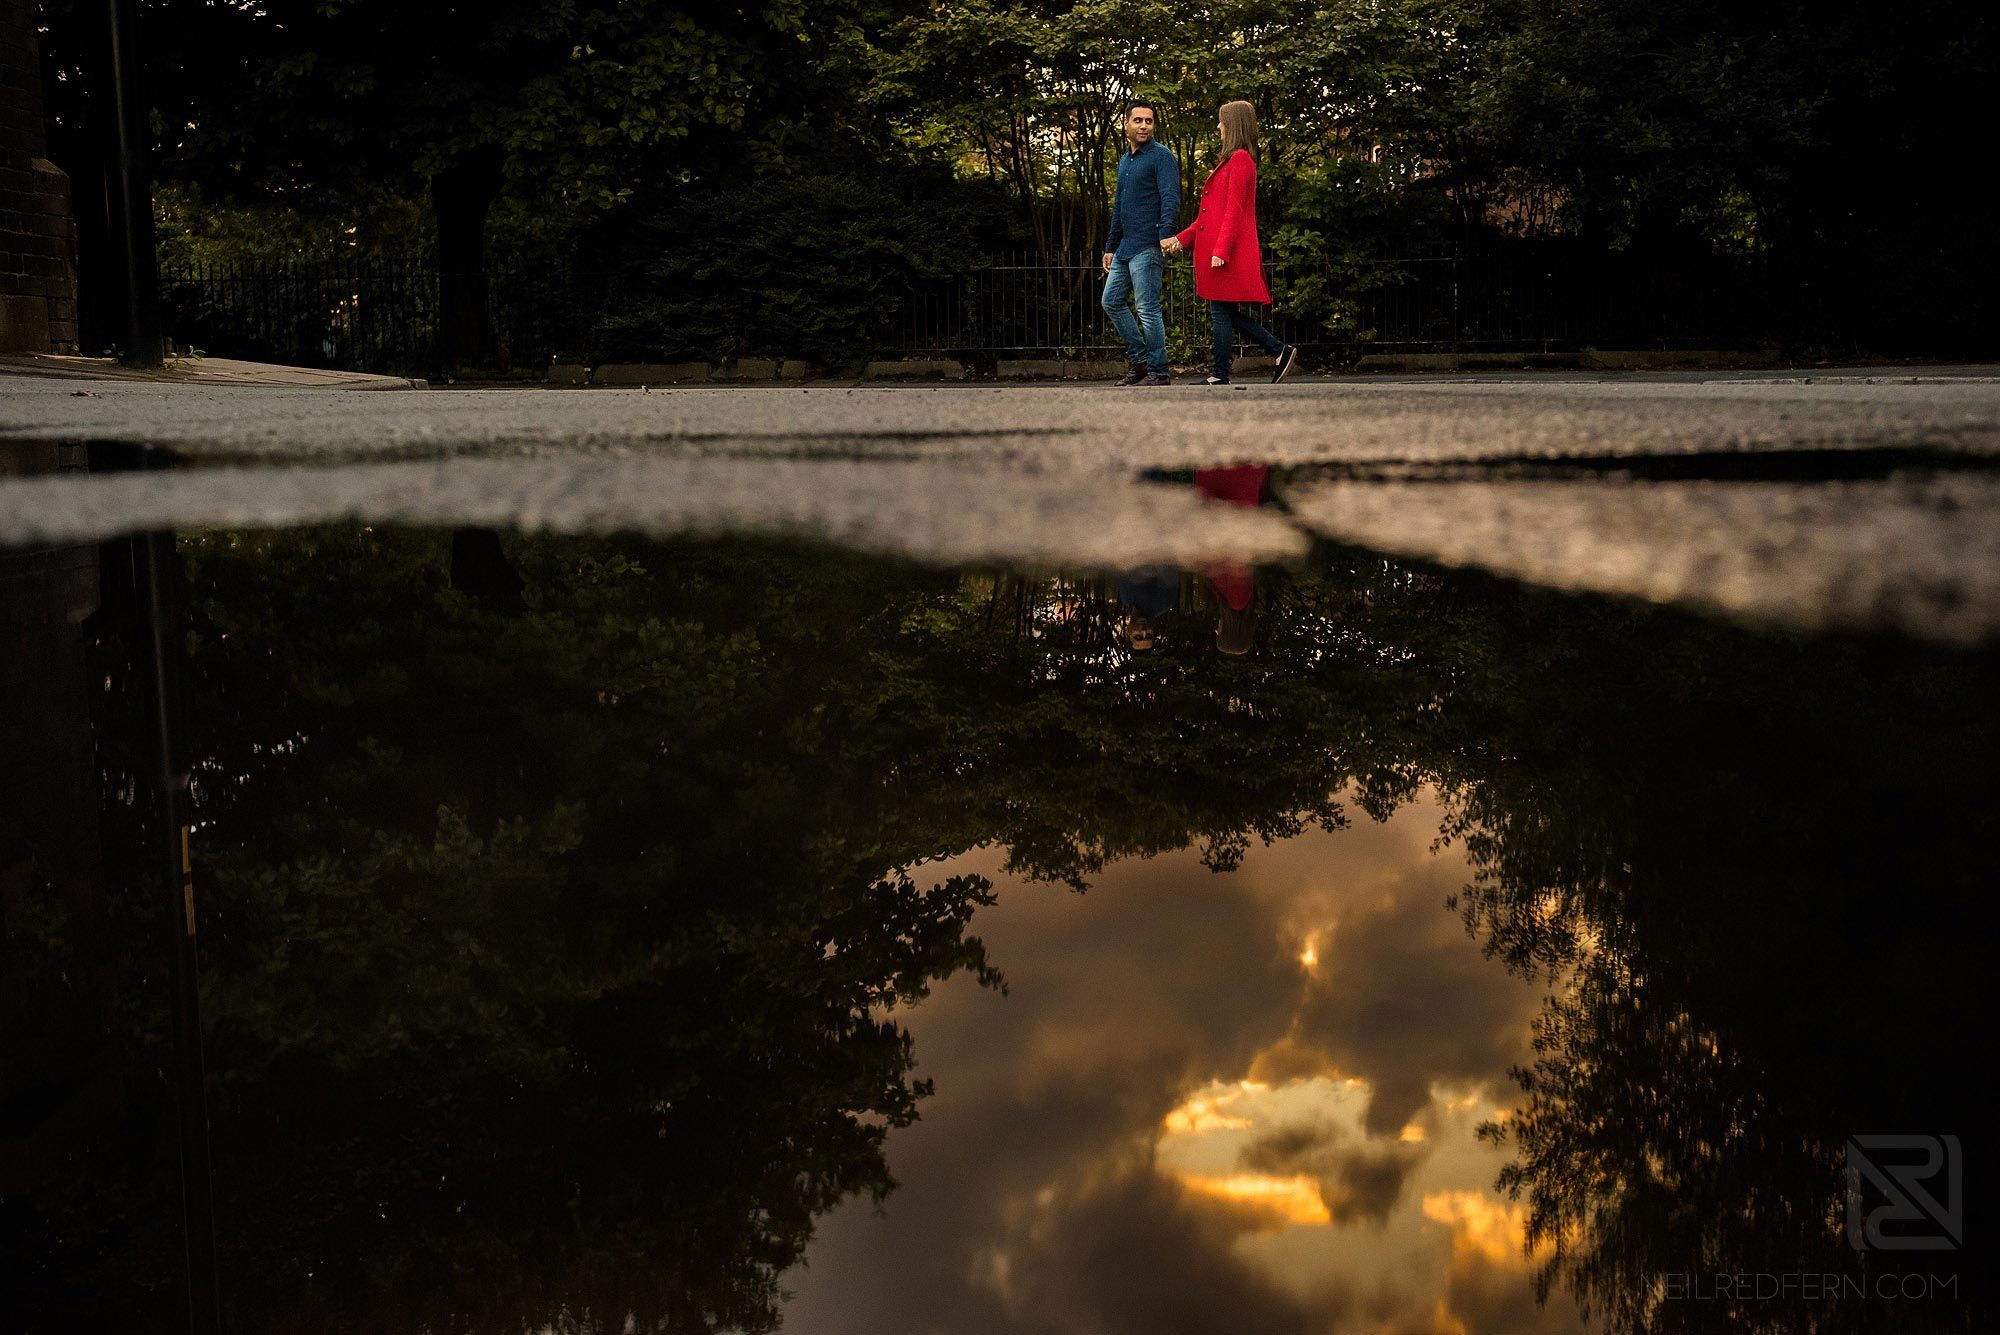 couple walking down street with reflection in puddle